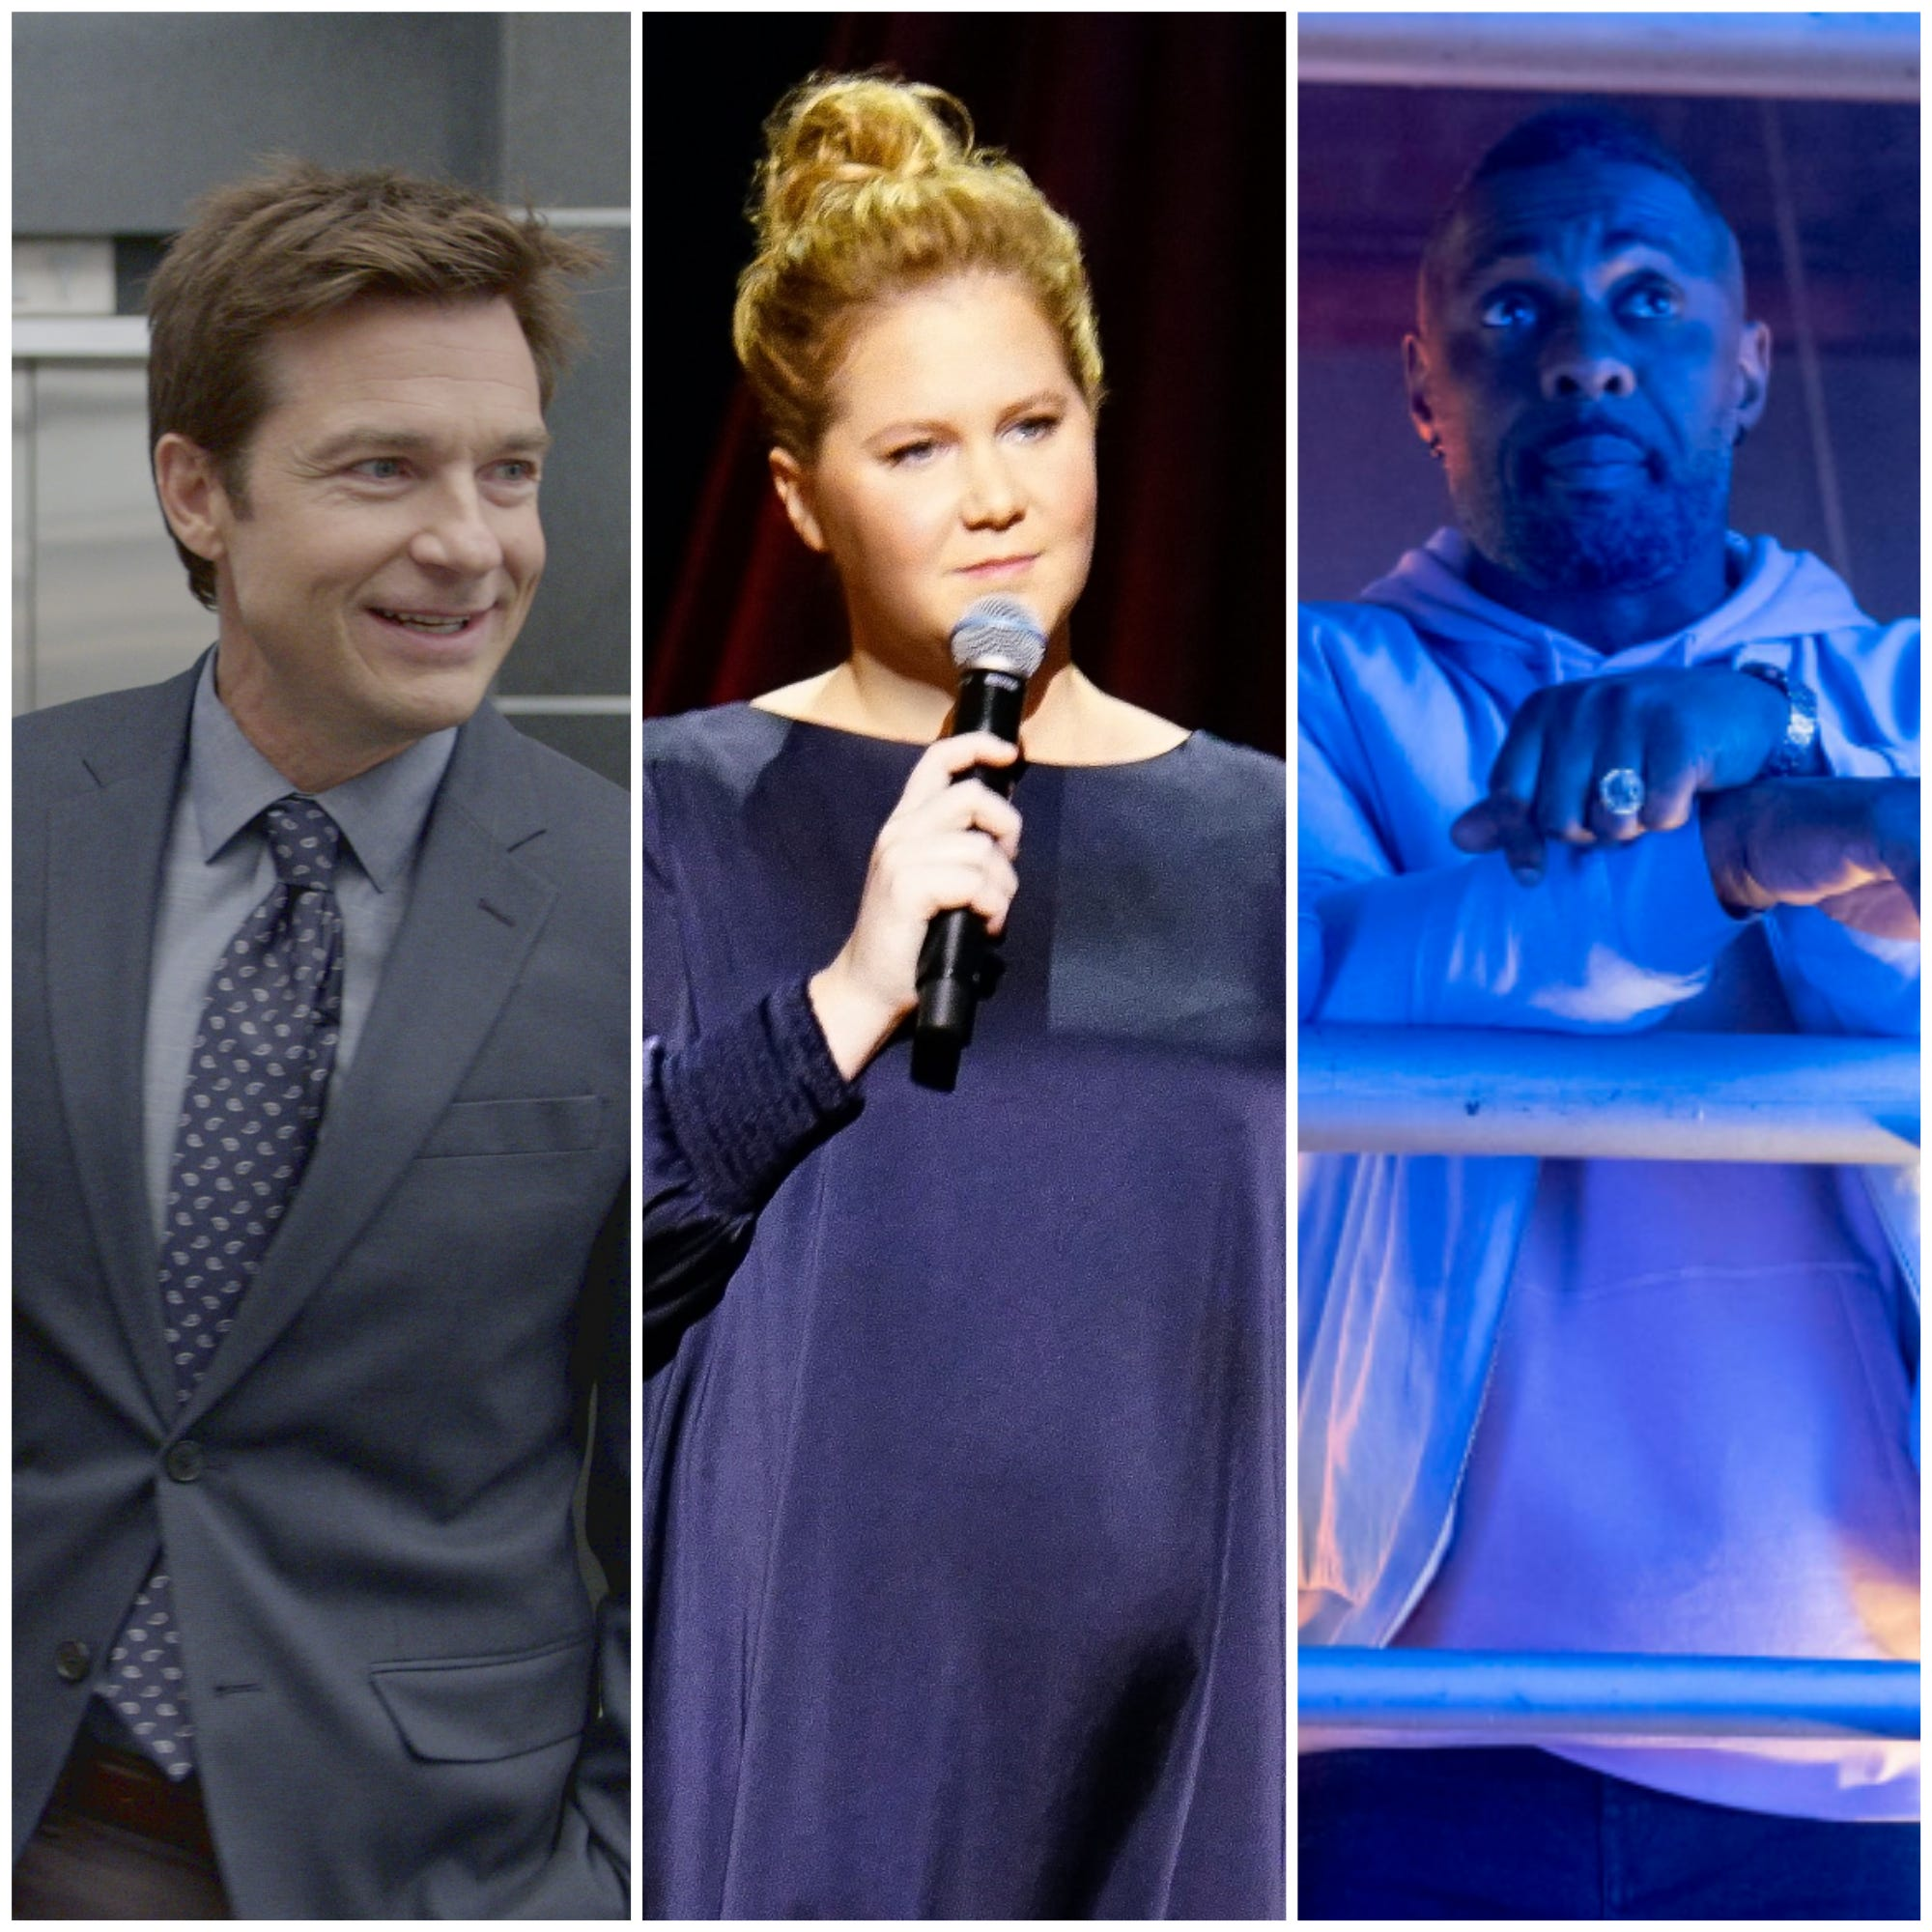 New on Netflix in March 2019: More Amy Schumer, 'Queer Eye' and 'Arrested Development'